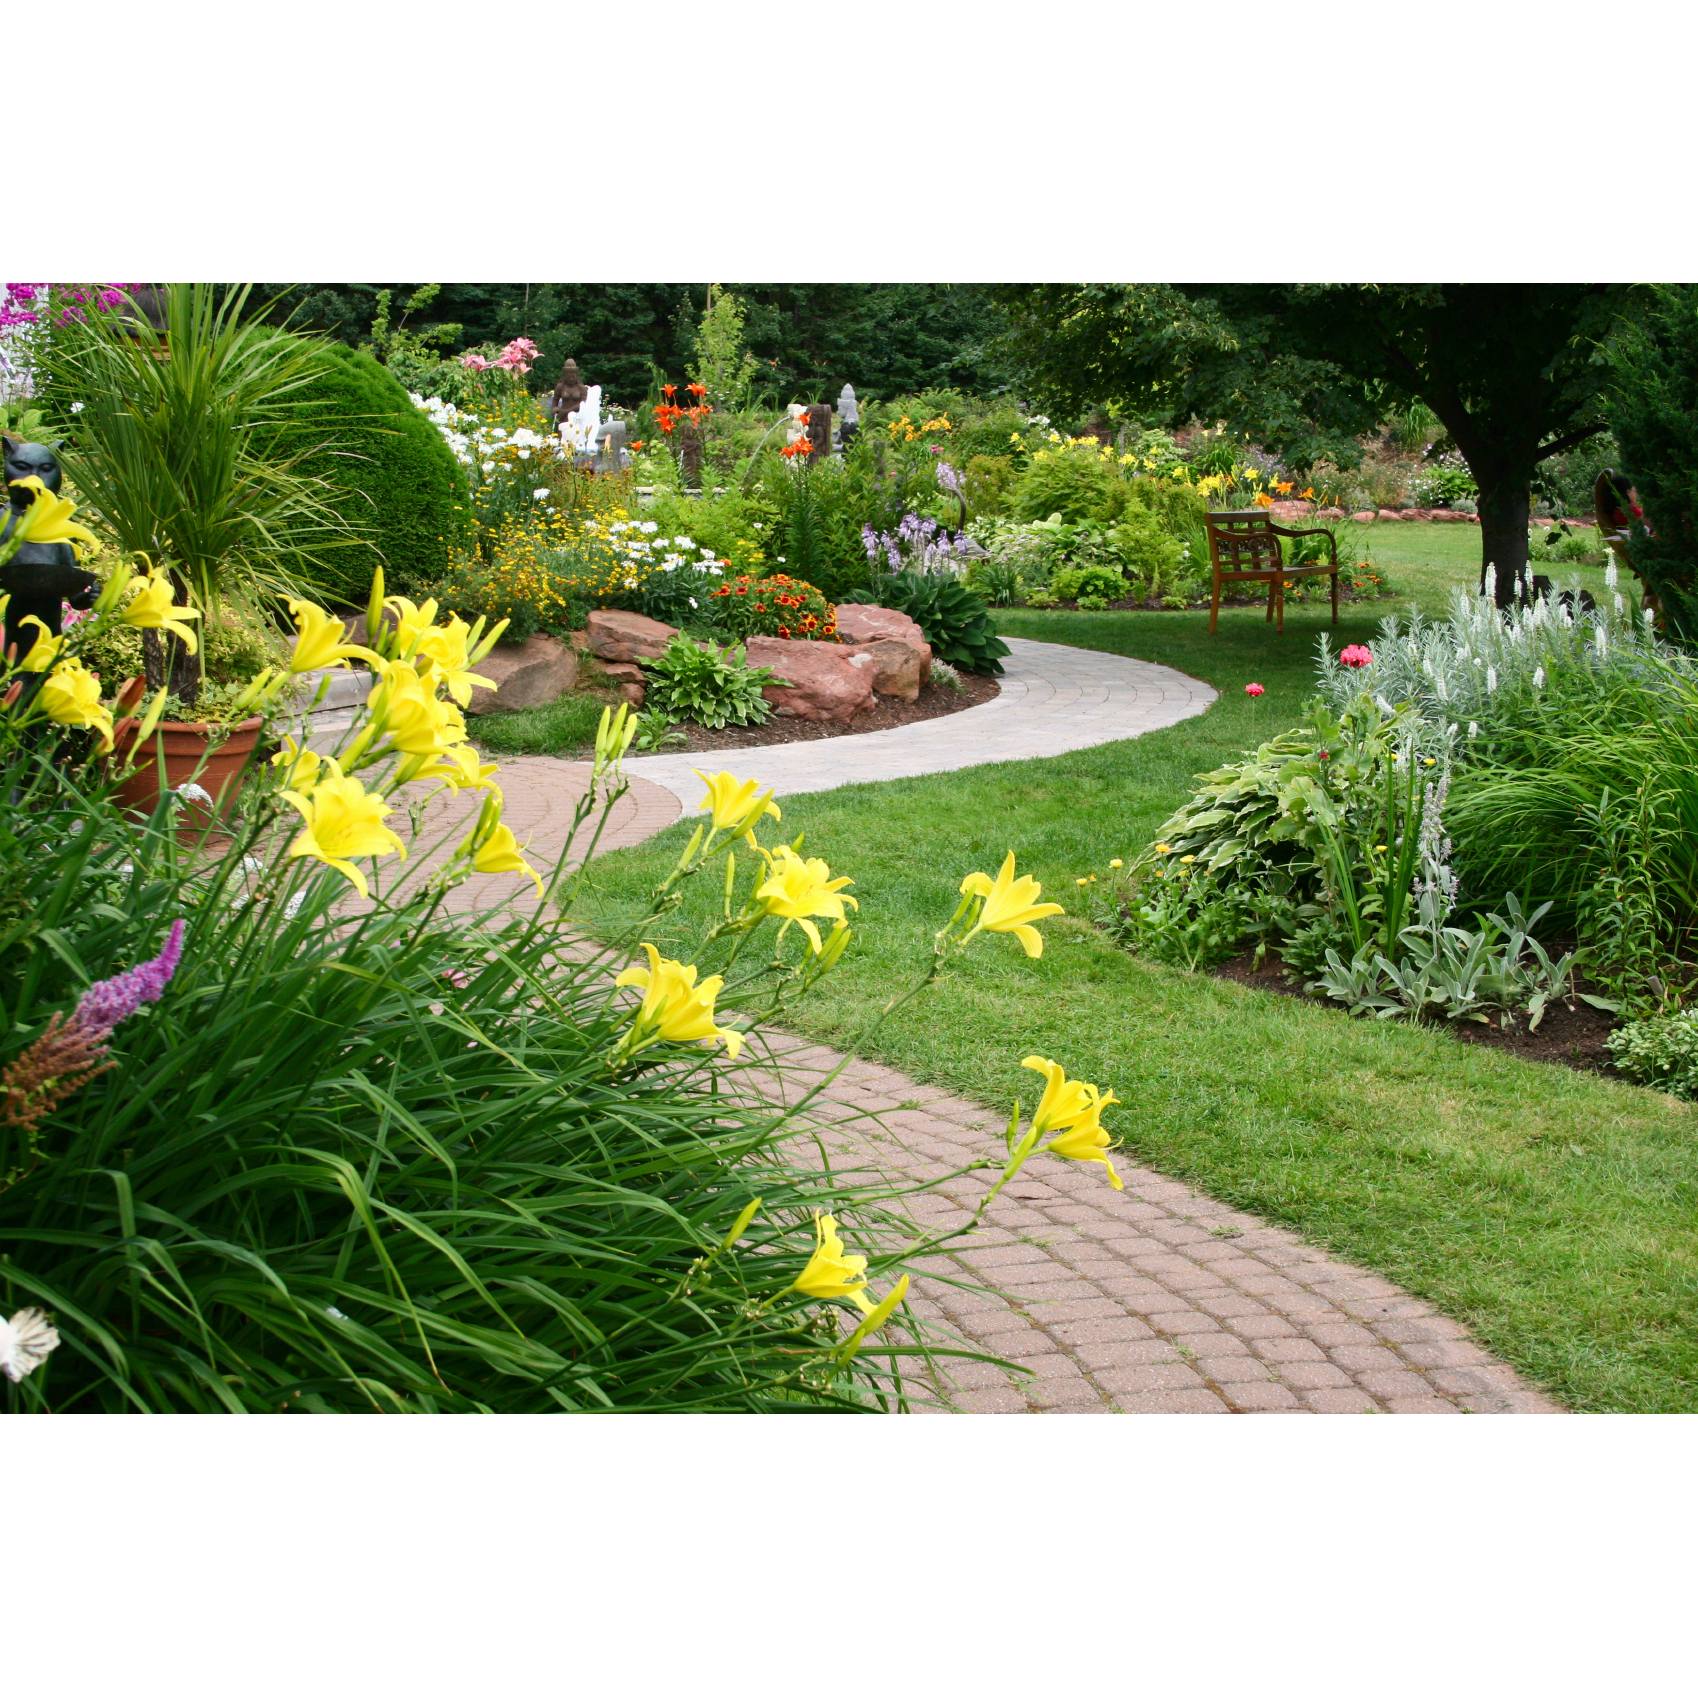 $25 MANZO'S LAWN CARE AND CLEANING IN LOMPOC BUELLTON SANTA YNEZ AND SANTA MARIA CCADTAR AT $25